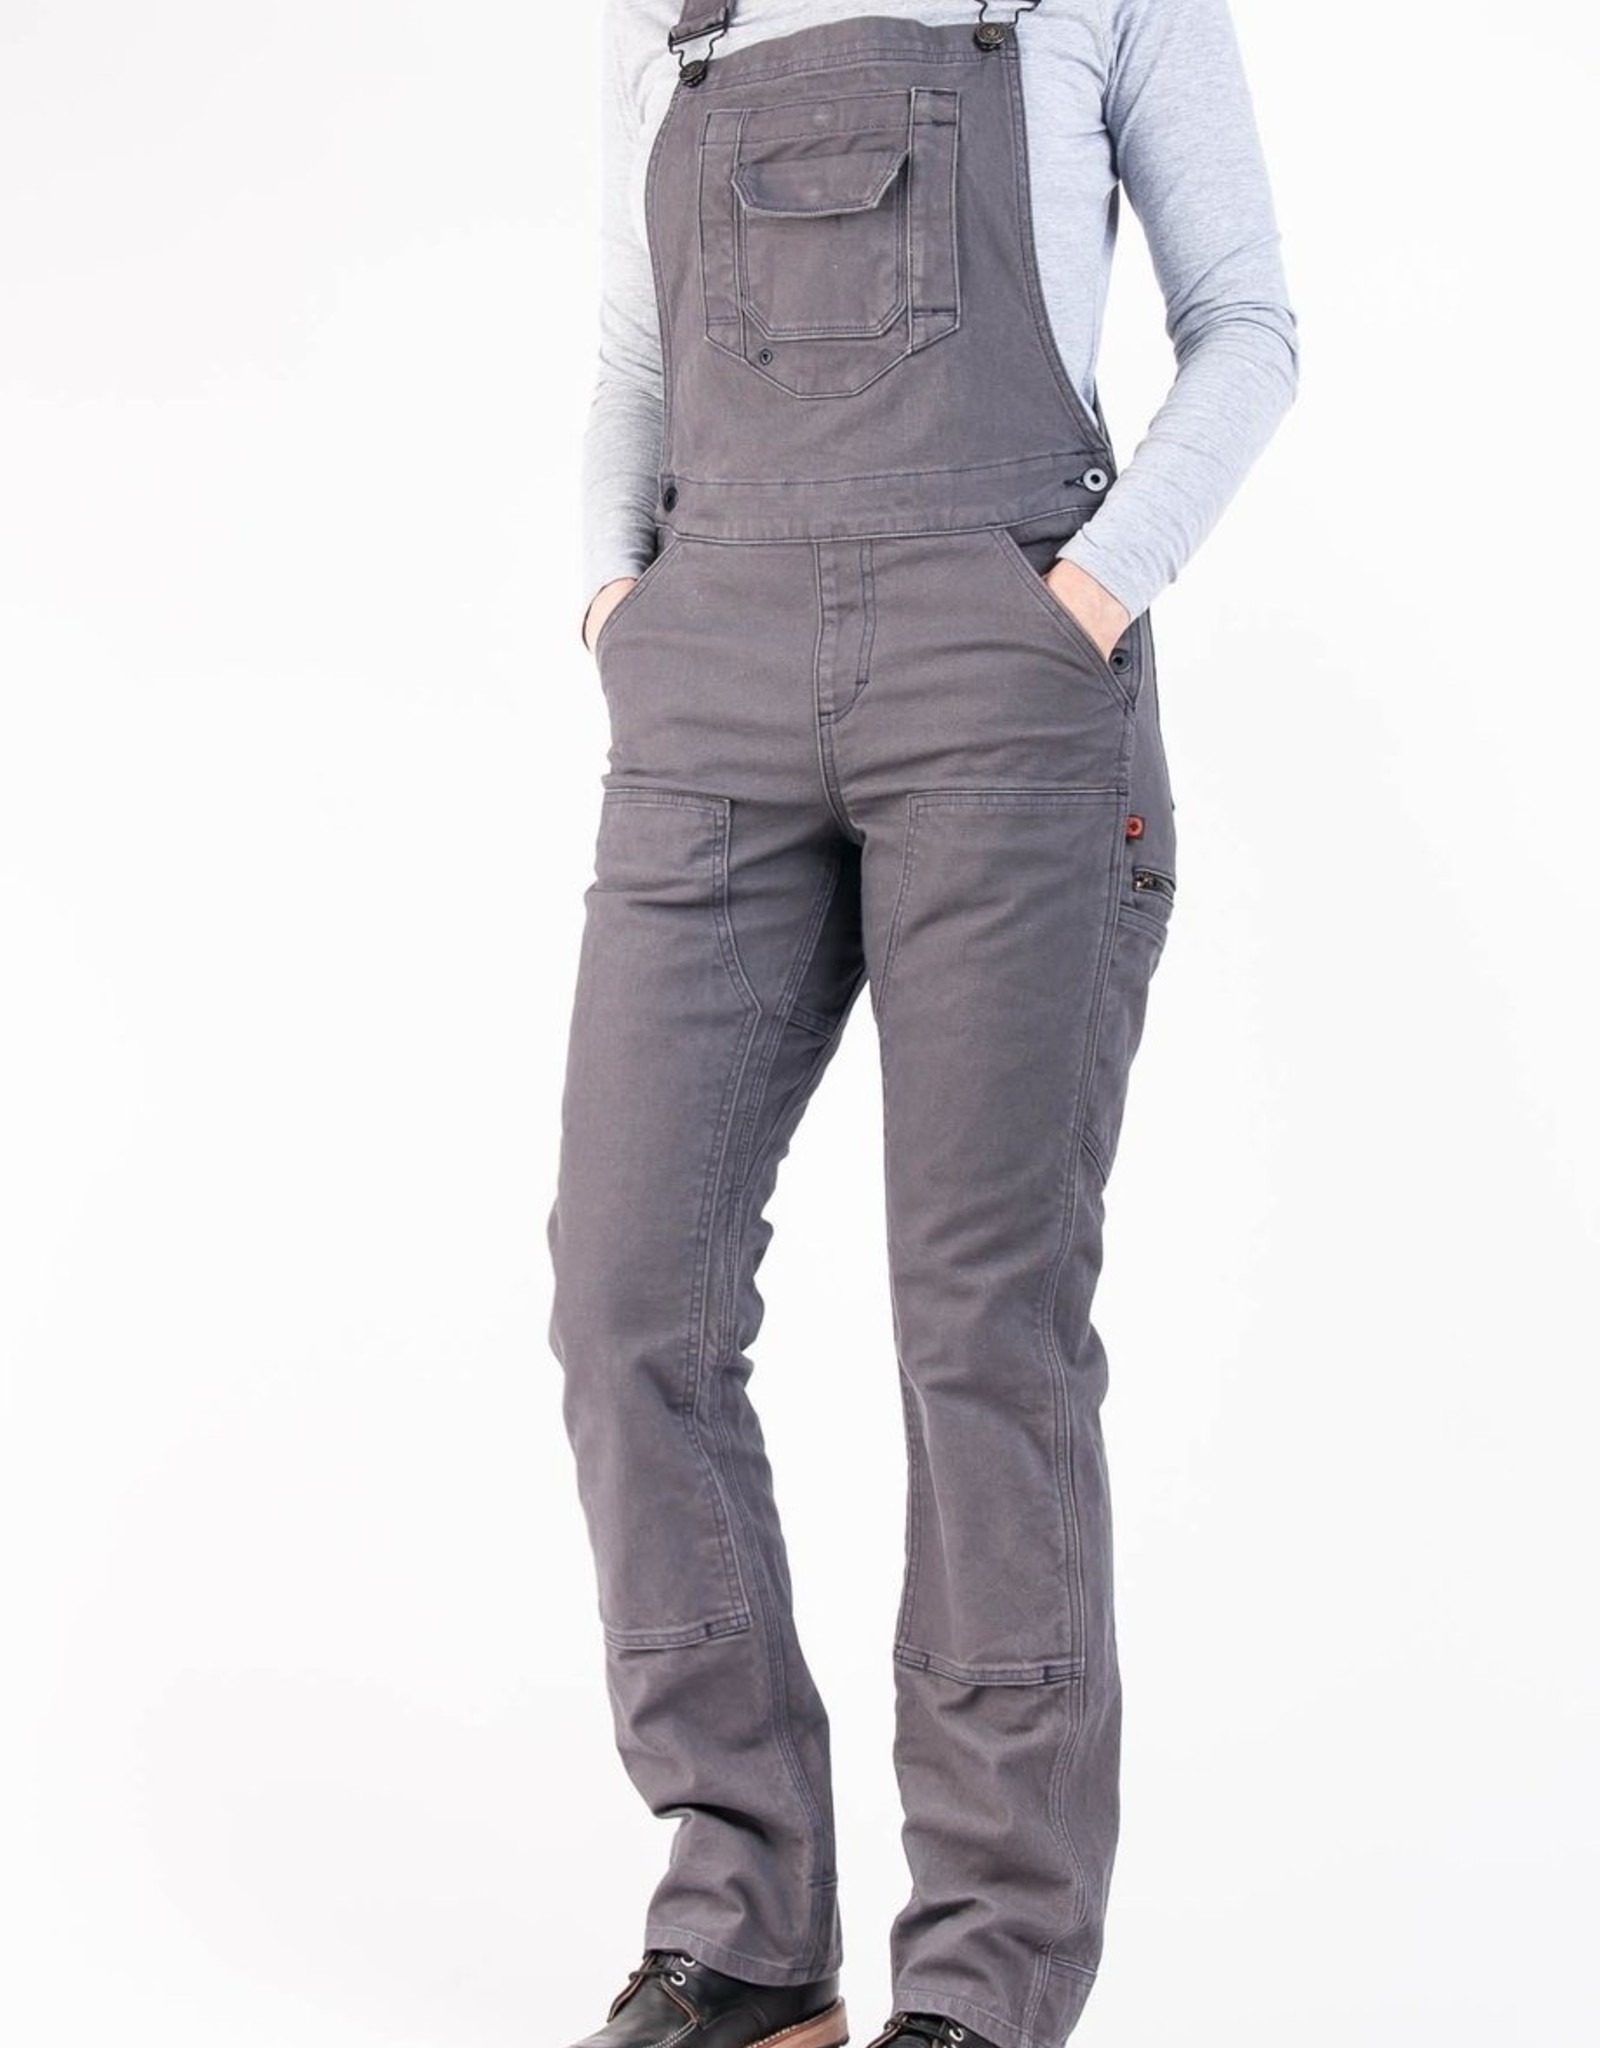 DOVETAIL Dovetail Womens Workwear Freshley Overall - Dark Grey